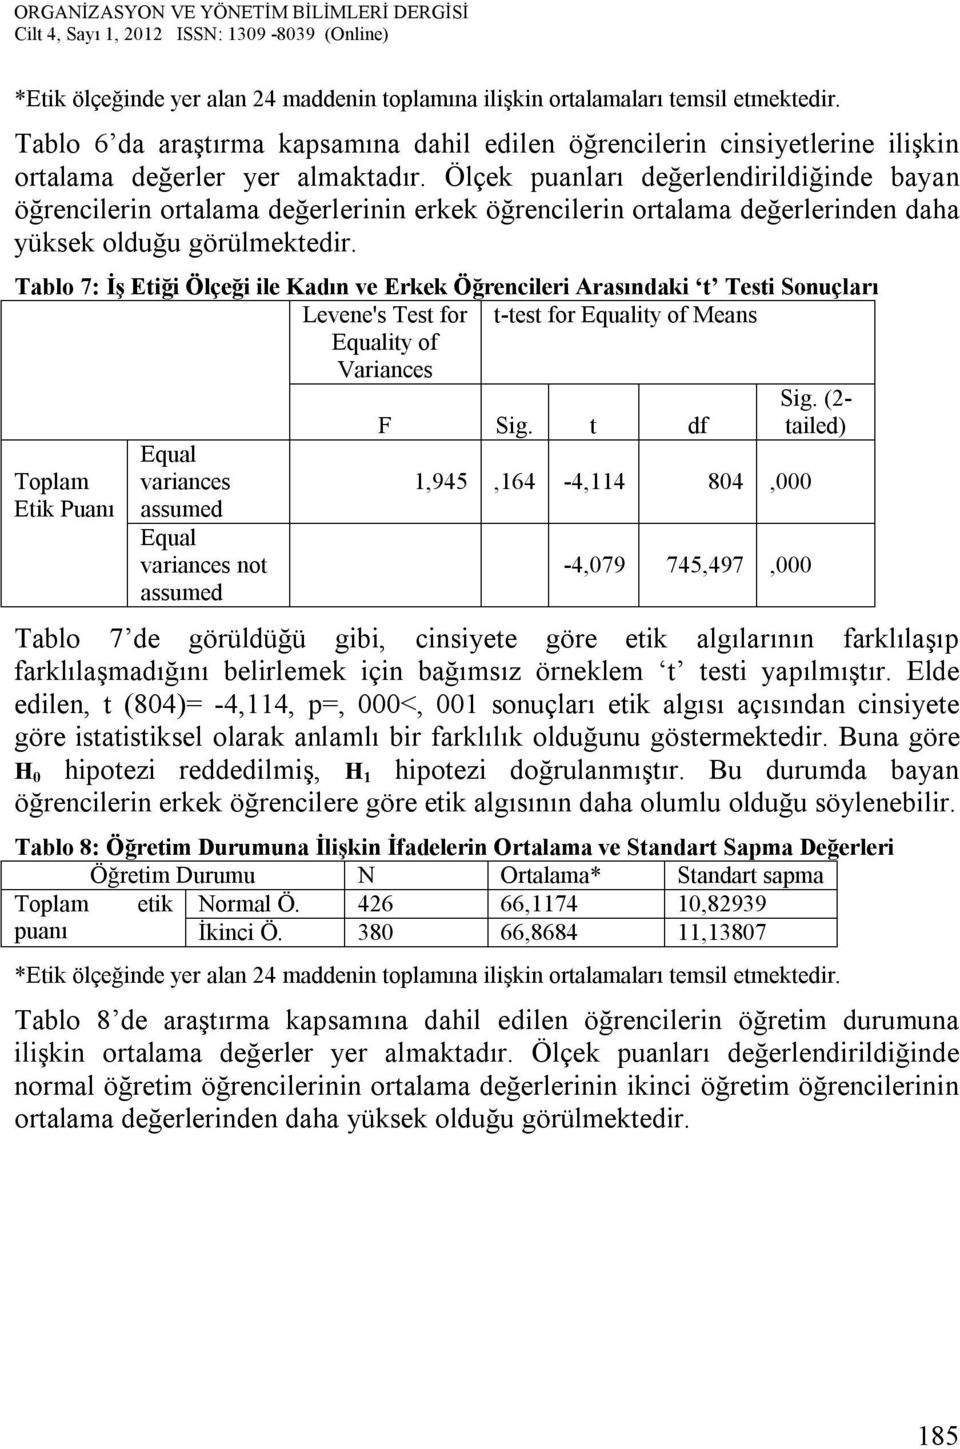 Tablo 7: İş Etiği Ölçeği ile Kadın ve Erkek Öğrencileri Arasındaki t Testi Sonuçları Levene's Test for t-test for Equality of Means Equality of Variances Toplam Etik Puanı Equal variances assumed